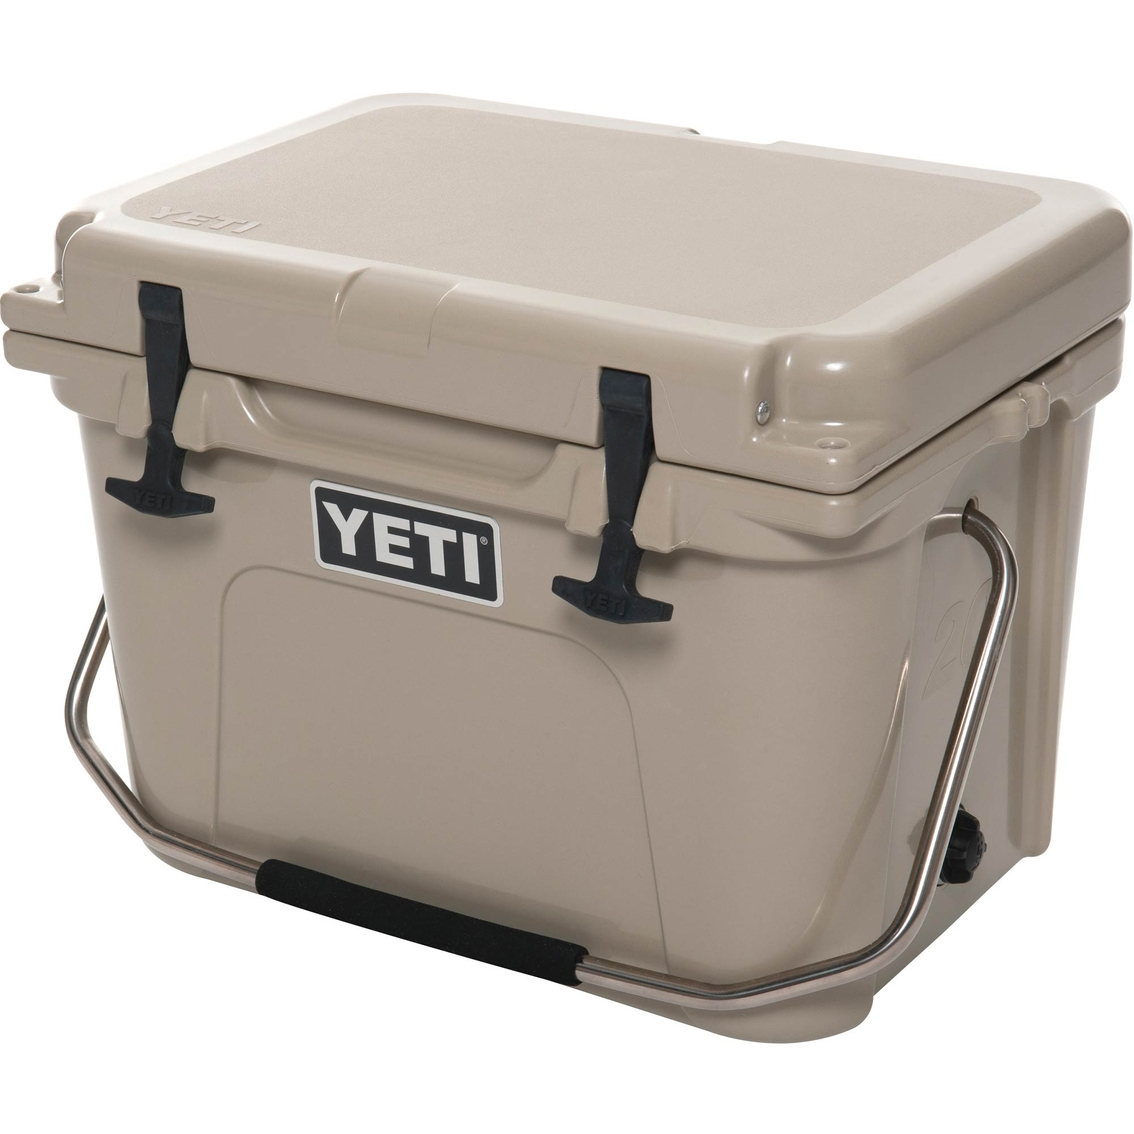 Yeti Roadie 20 Qt  Cooler | Coolers | Sports & Outdoors